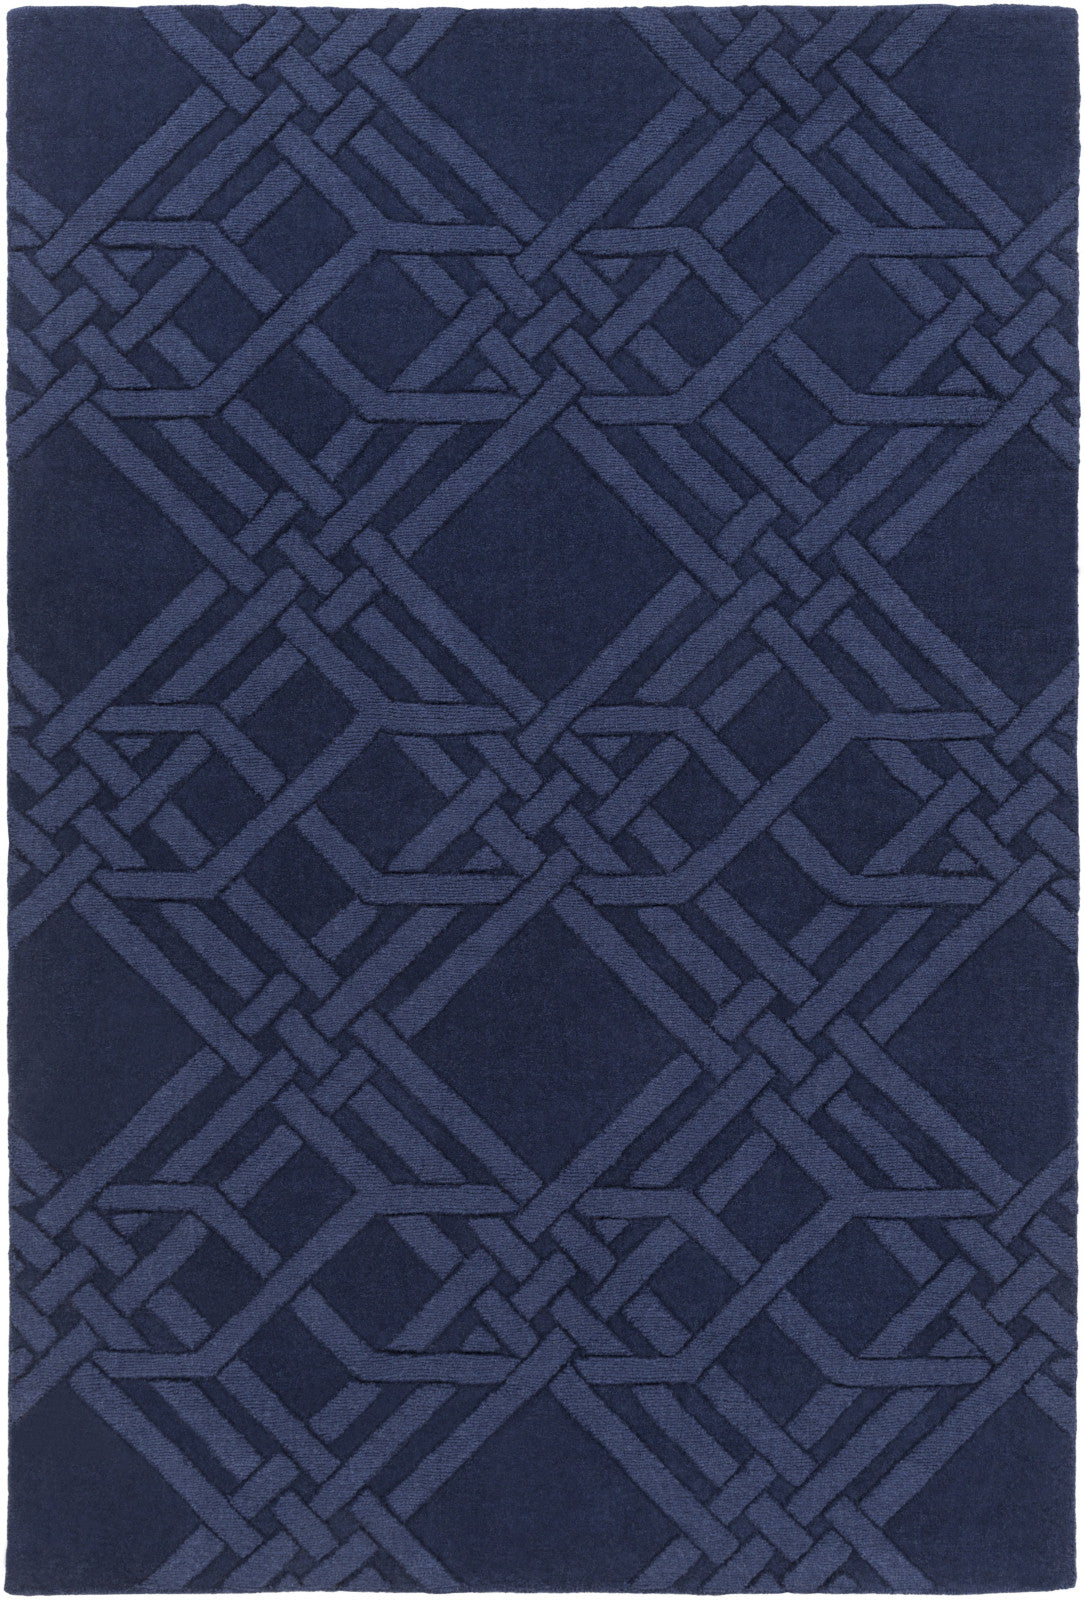 Surya The Oakes OAK-6005 Area Rug by Florence Broadhurst